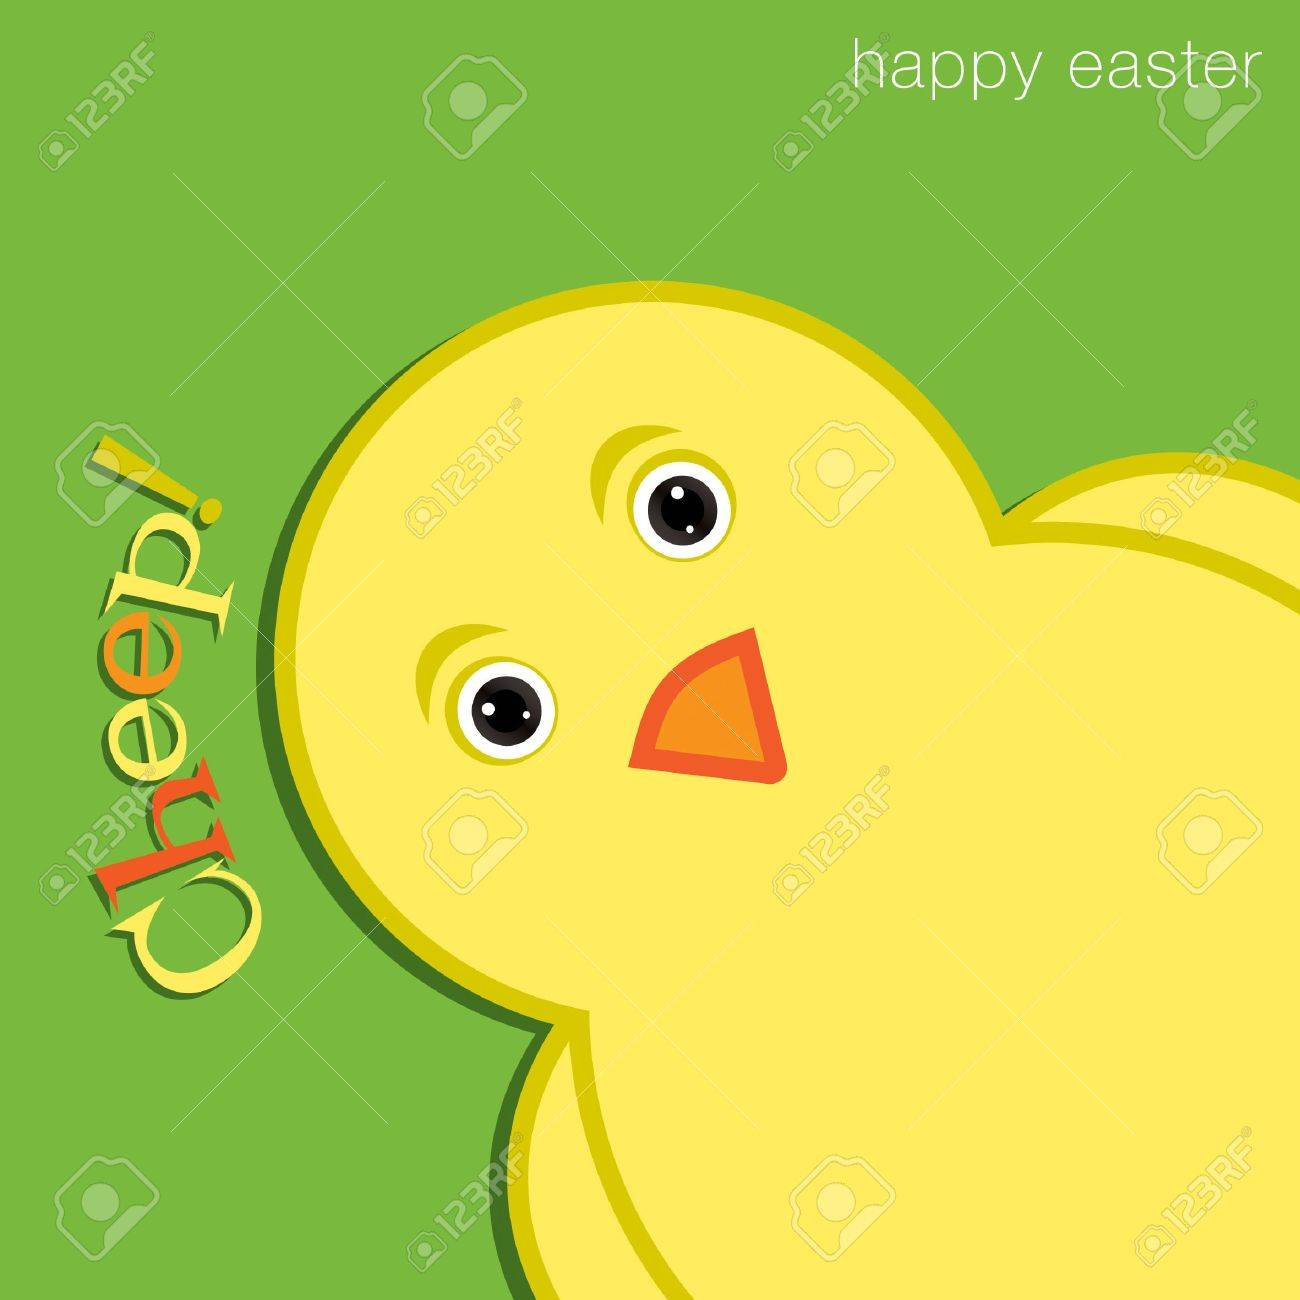 Cheep  Chick Happy Easter Card Stock Vector - 19511161